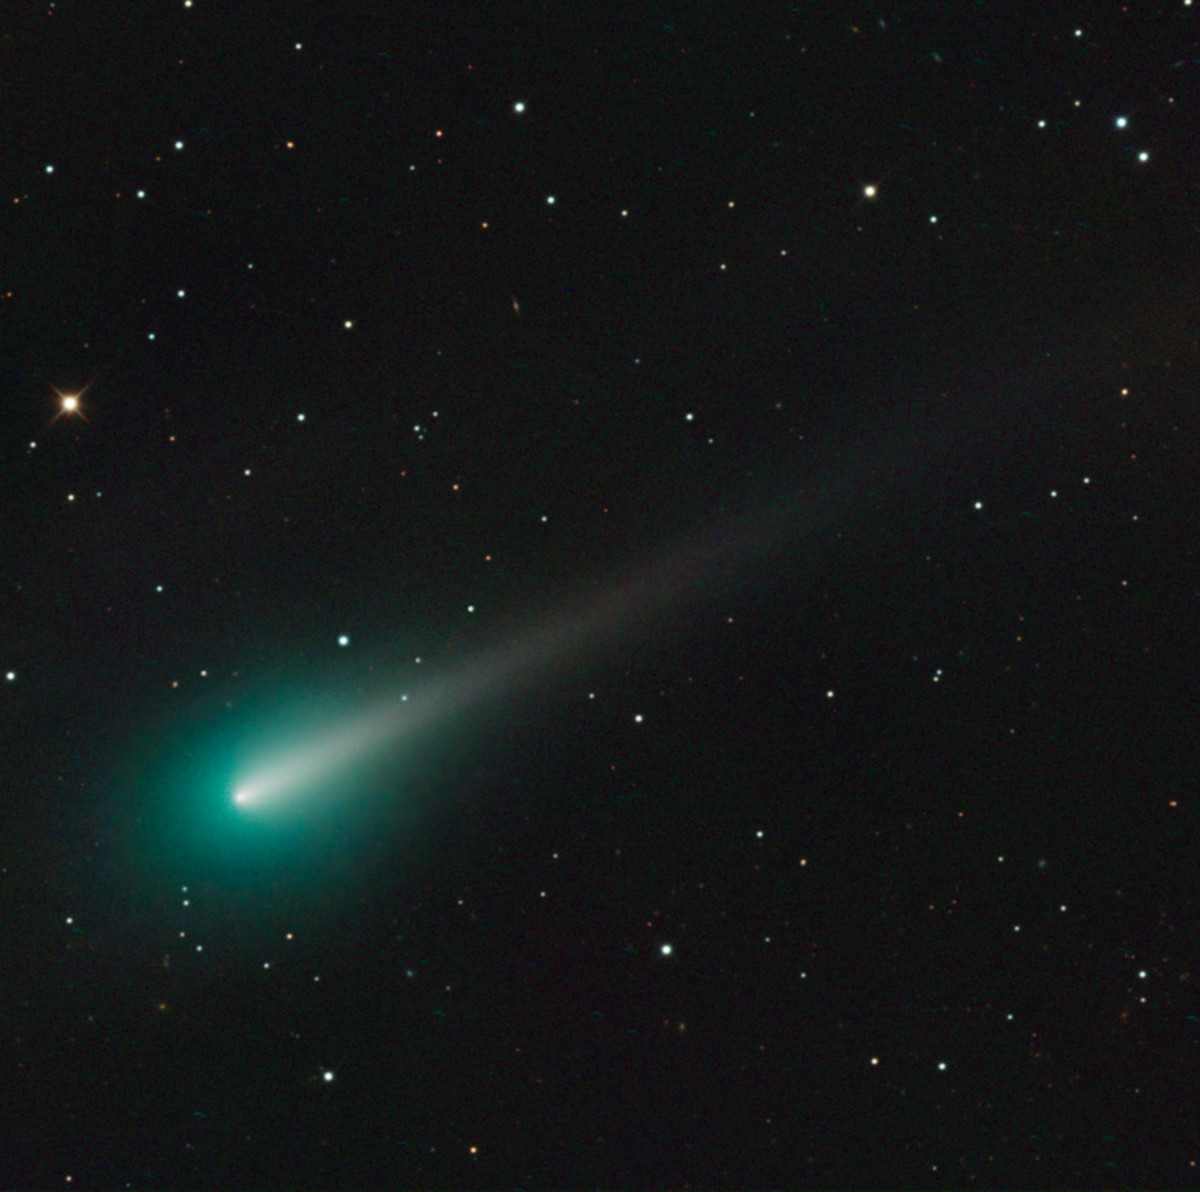 ISON in full glory.